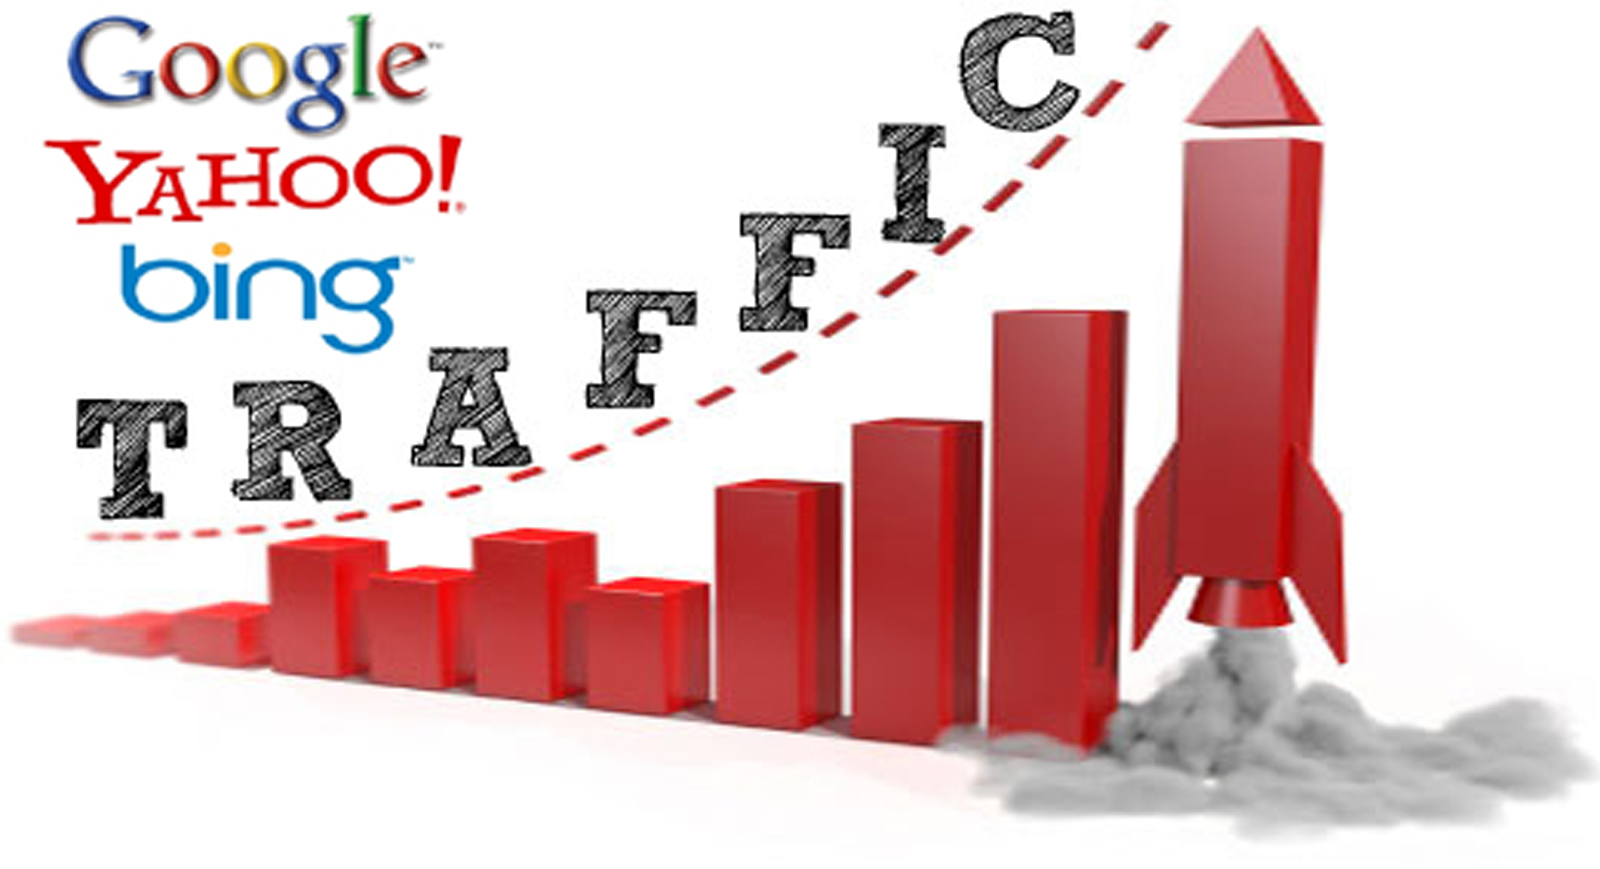 Converting our website traffic into sales